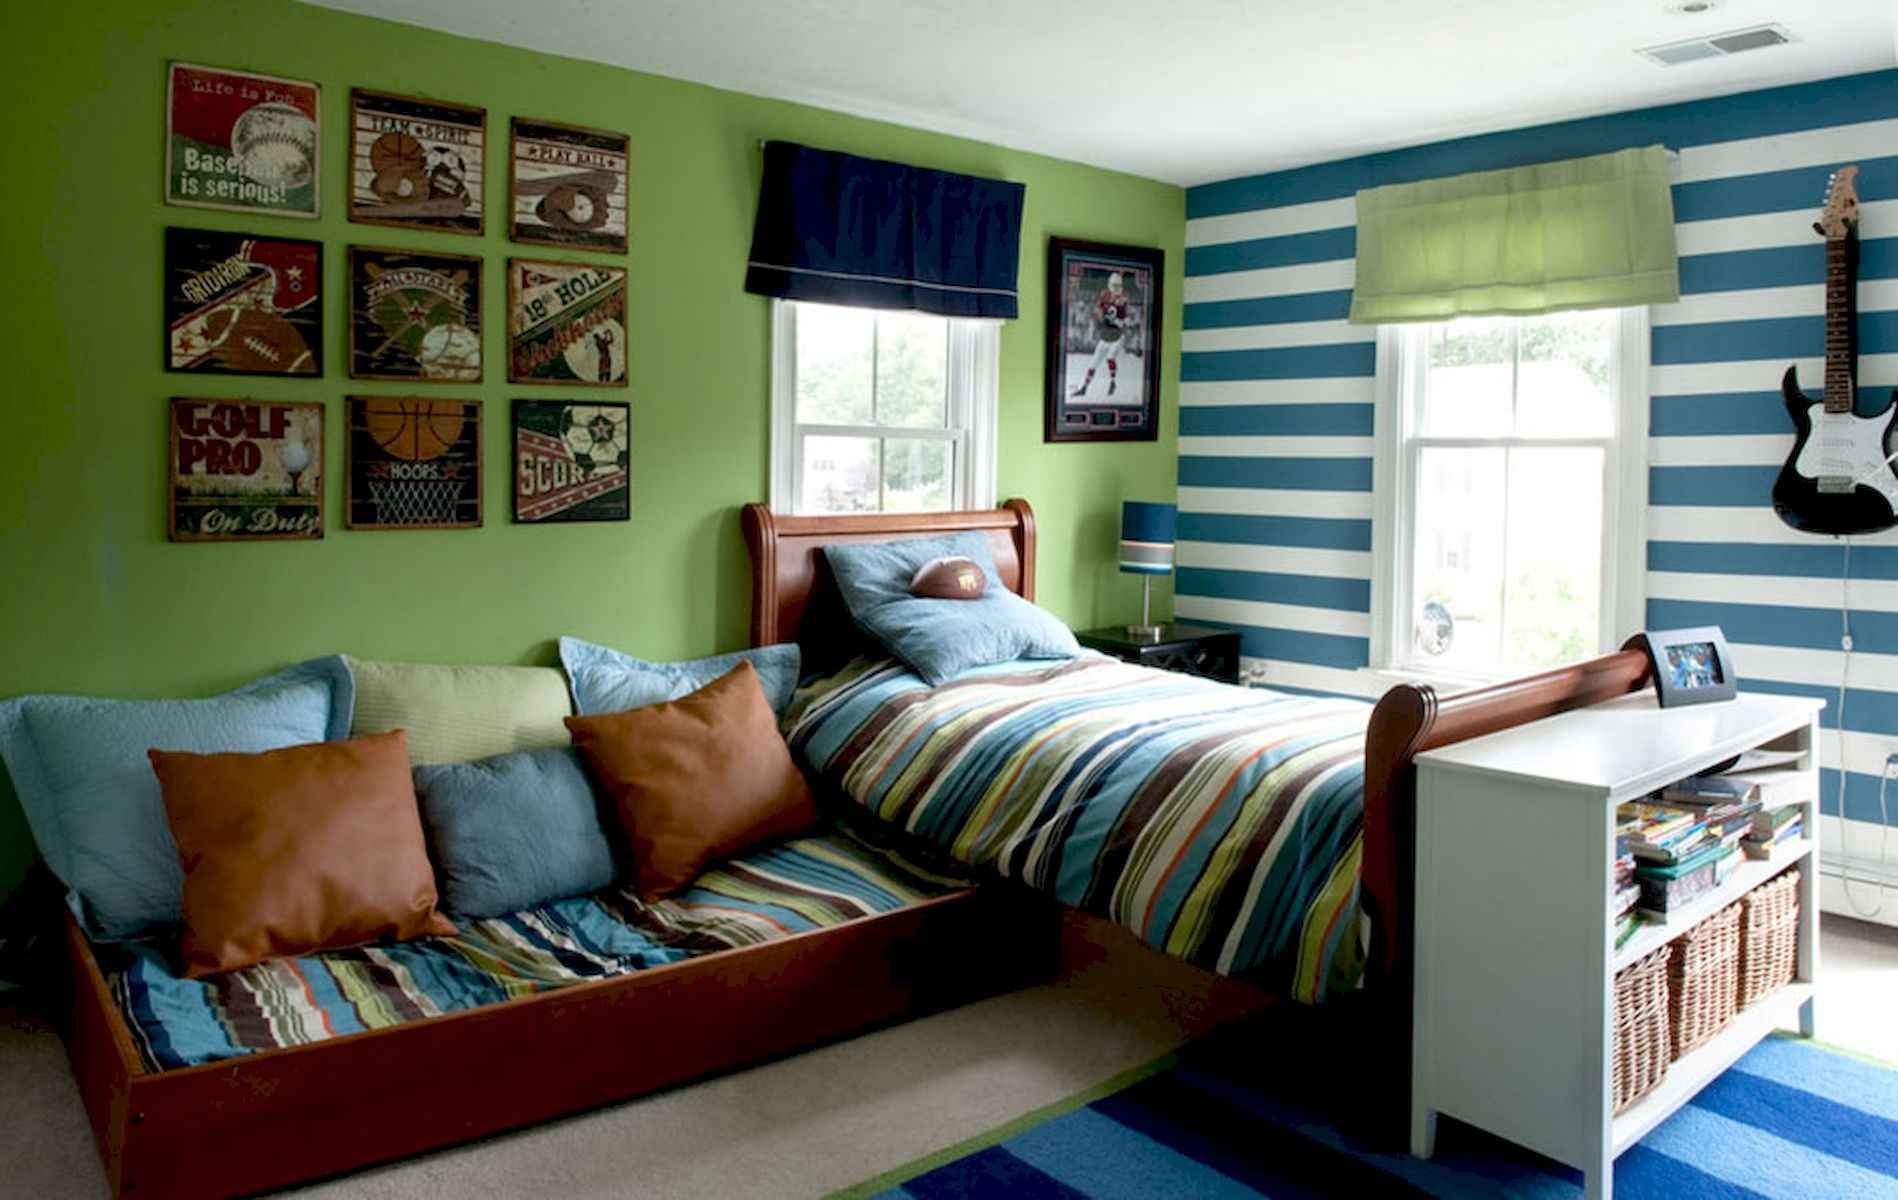 60 Gorgeous College Dorm Room Decorating Ideas And Makeover (41)